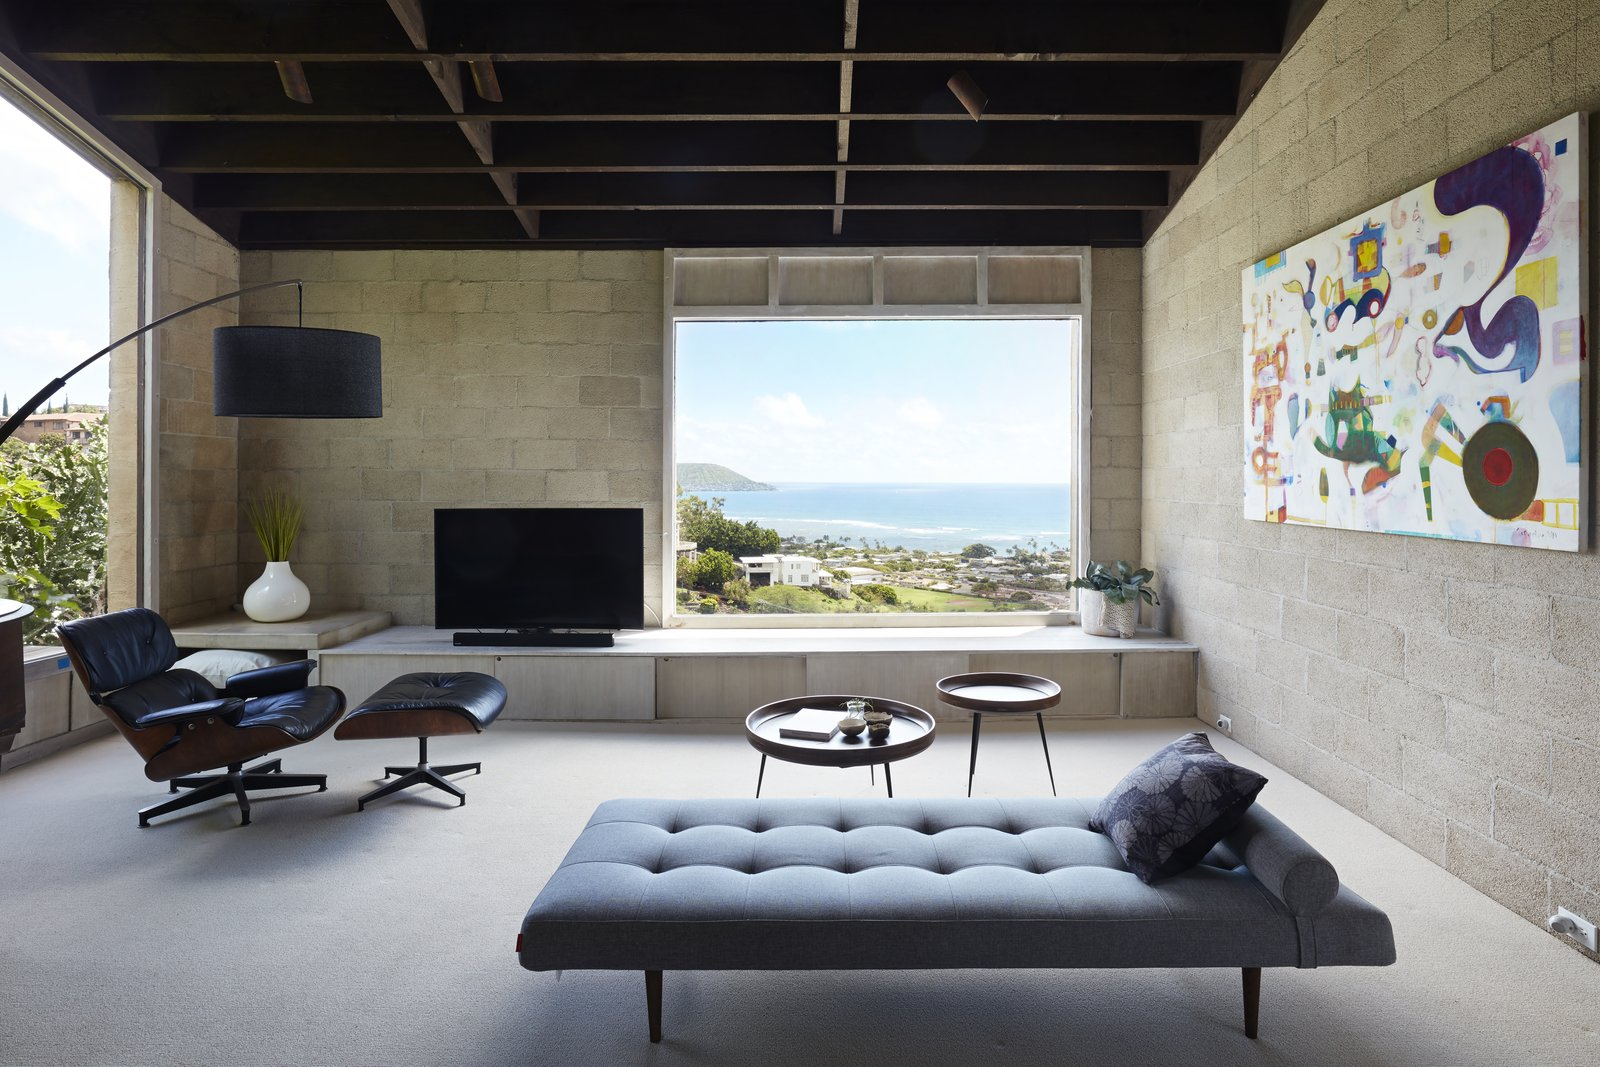 Living, Recliner, Coffee Tables, Ceiling, Carpet, Bench, Chair, Floor, and Ottomans Large picture windows in every room connect occupants to Pacific Ocean vistas.   Best Living Carpet Ottomans Photos from A Famed Japanese Composer's Effortless Honolulu Hideout Asks $2.95M